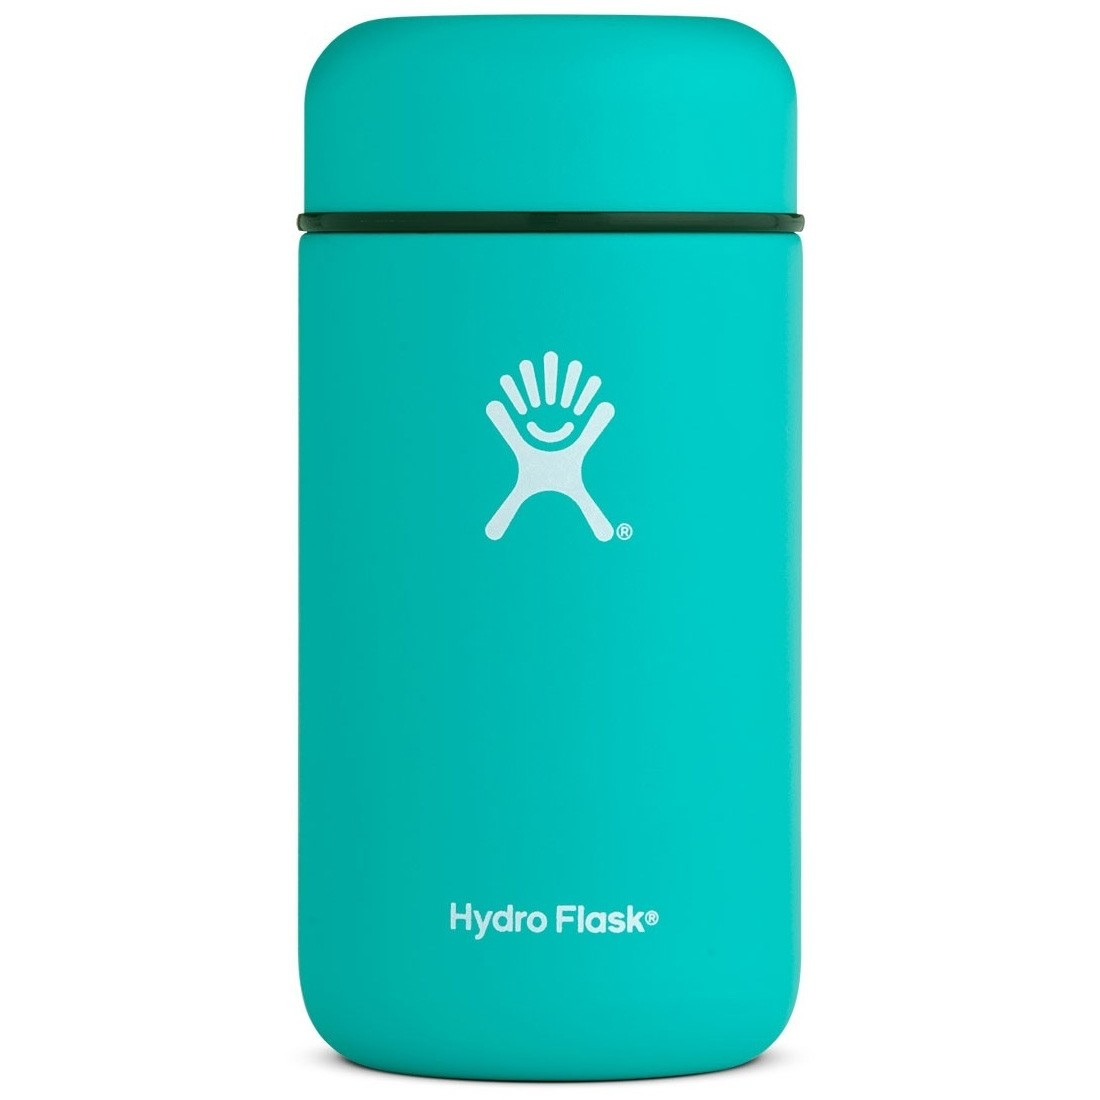 Hydro Flask 18oz Insulated Food Flask - Mint